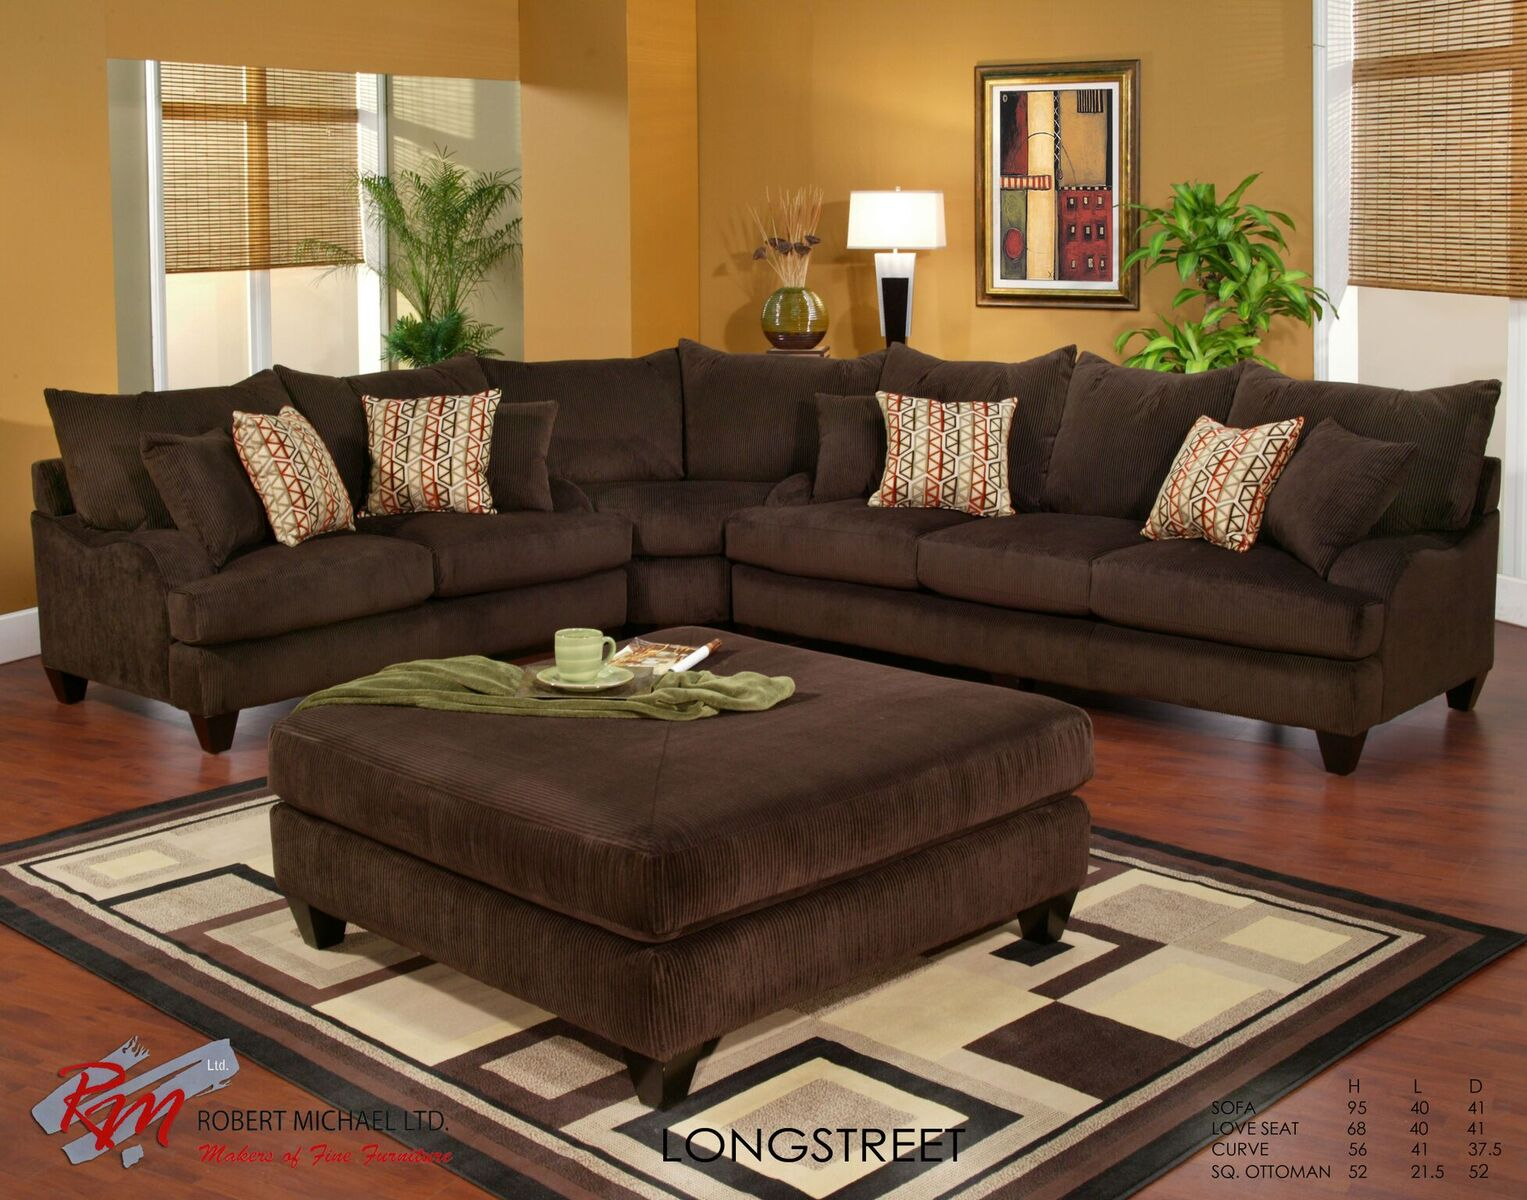 Long Street : robert michael ltd sectional - Sectionals, Sofas & Couches